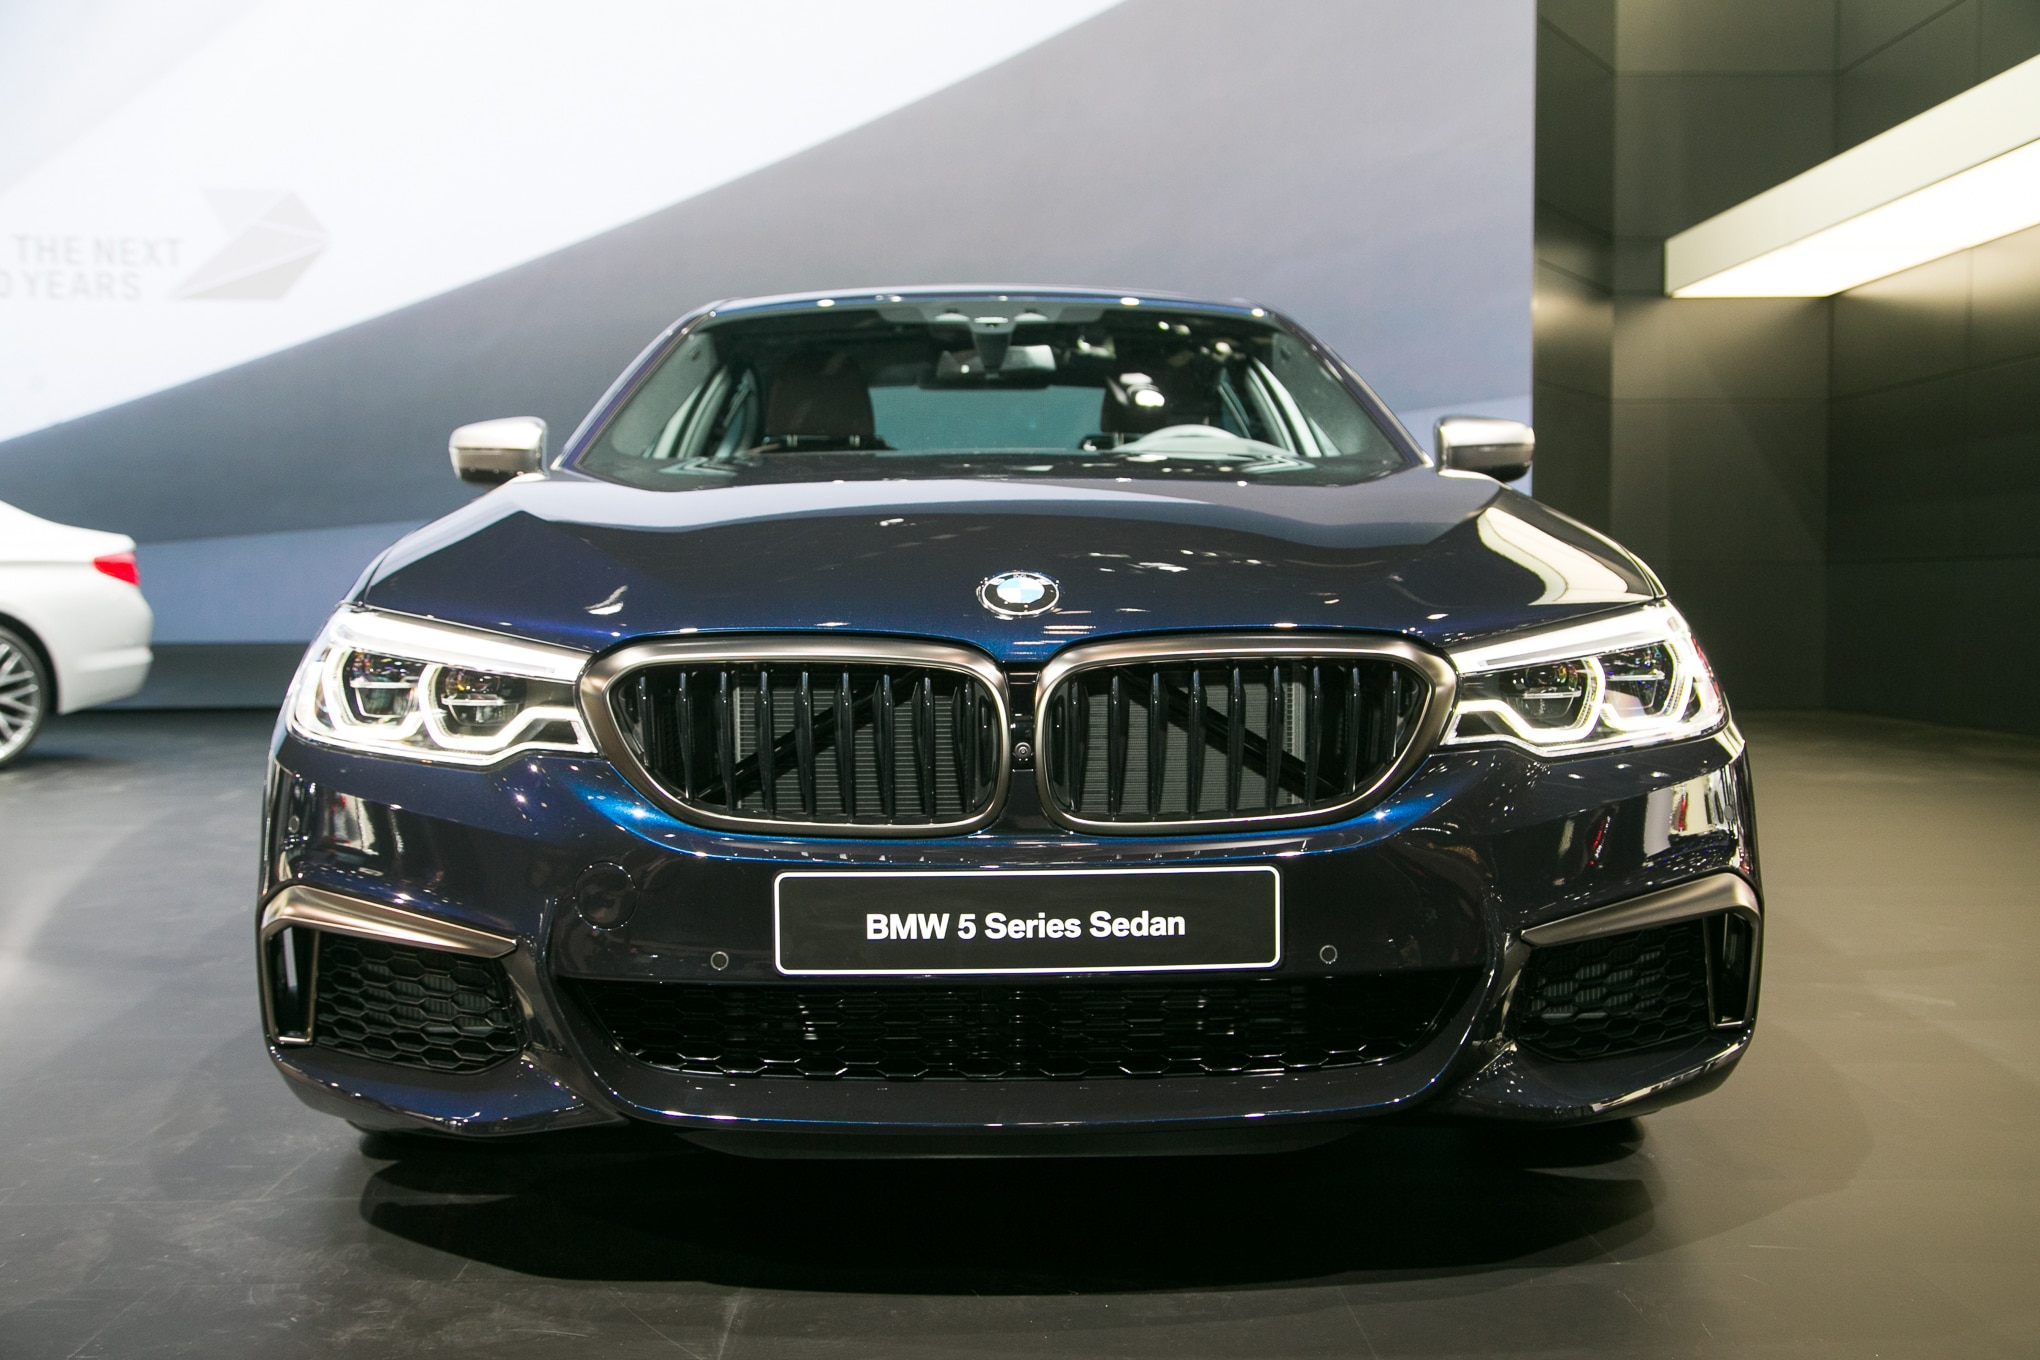 The Man Behind the 2017 BMW 5 Series Picks His Five Favorite Elements